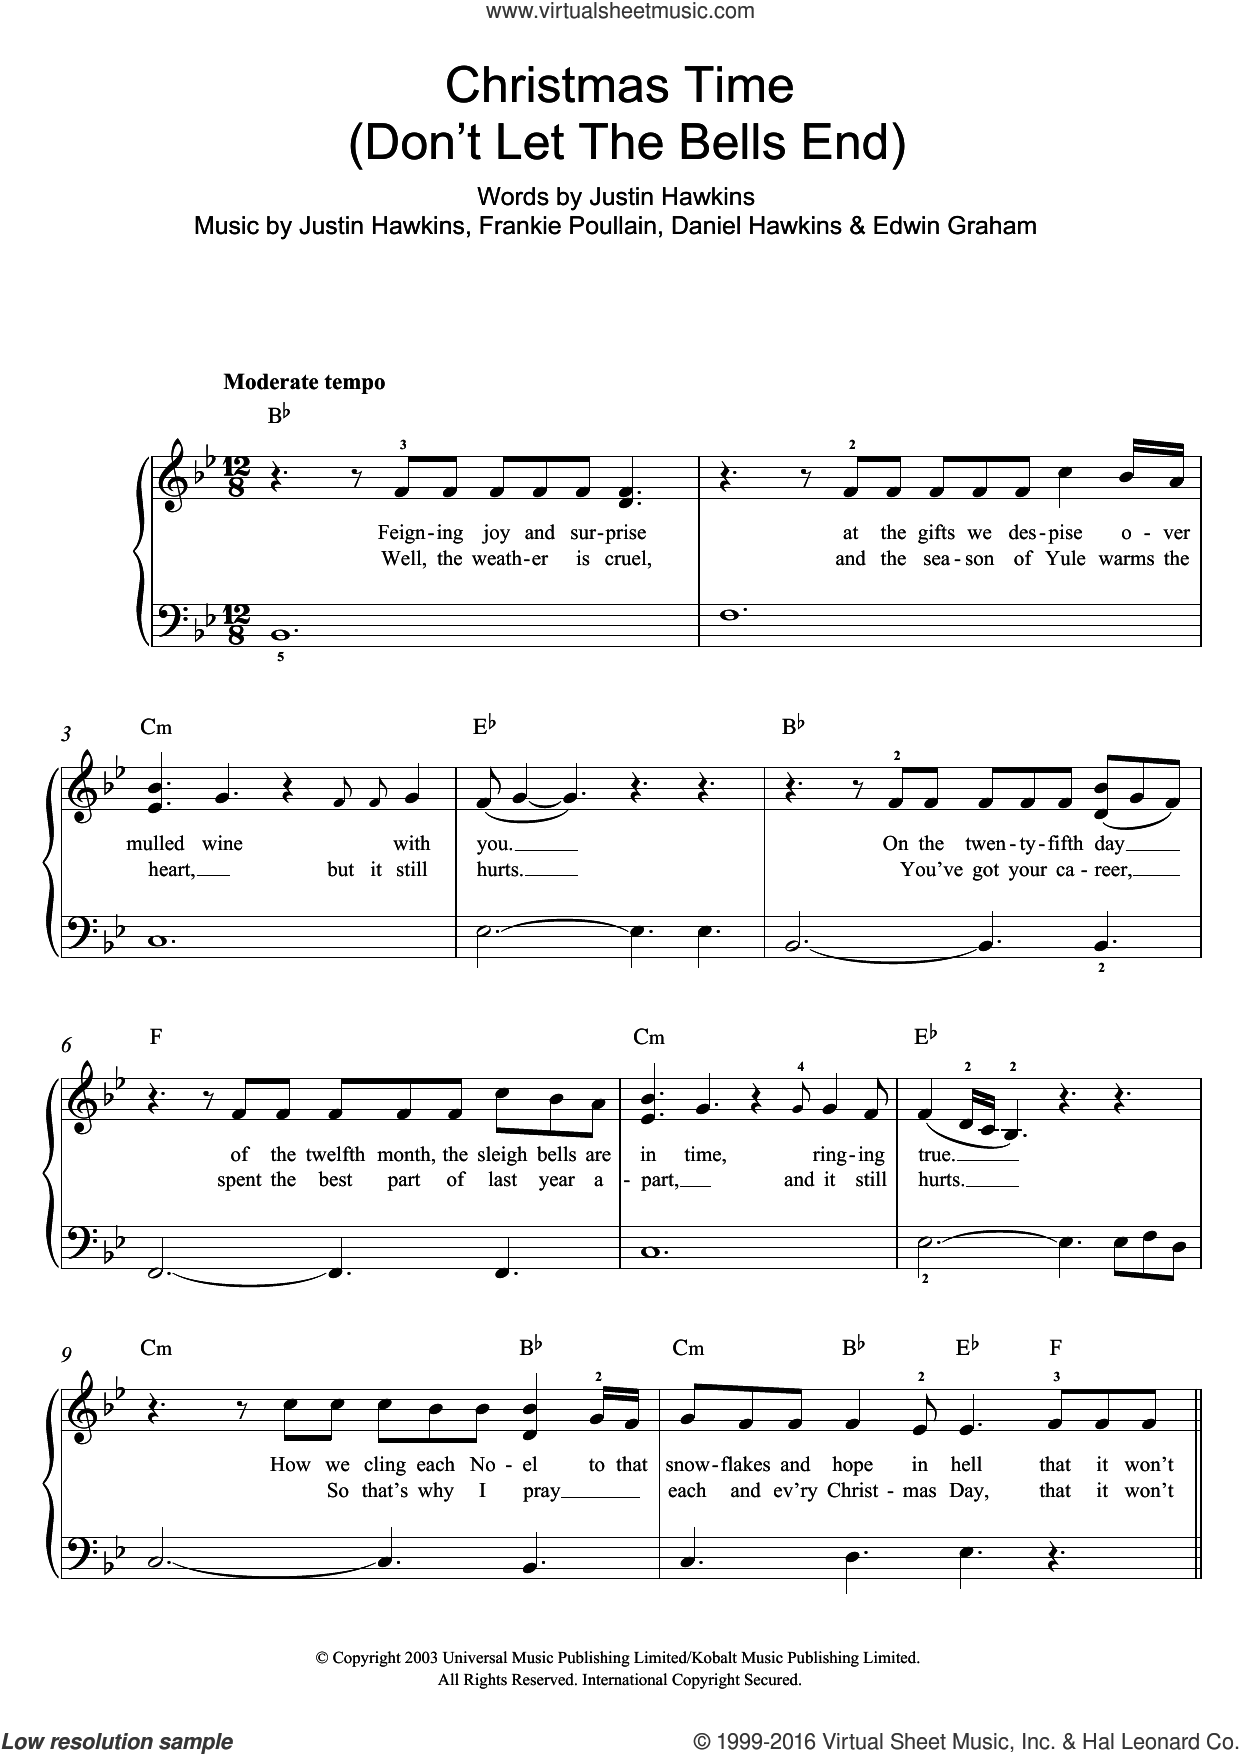 Christmas Time (Don't Let The Bells End) sheet music for piano solo by Daniel Hawkins and Justin Hawkins. Score Image Preview.